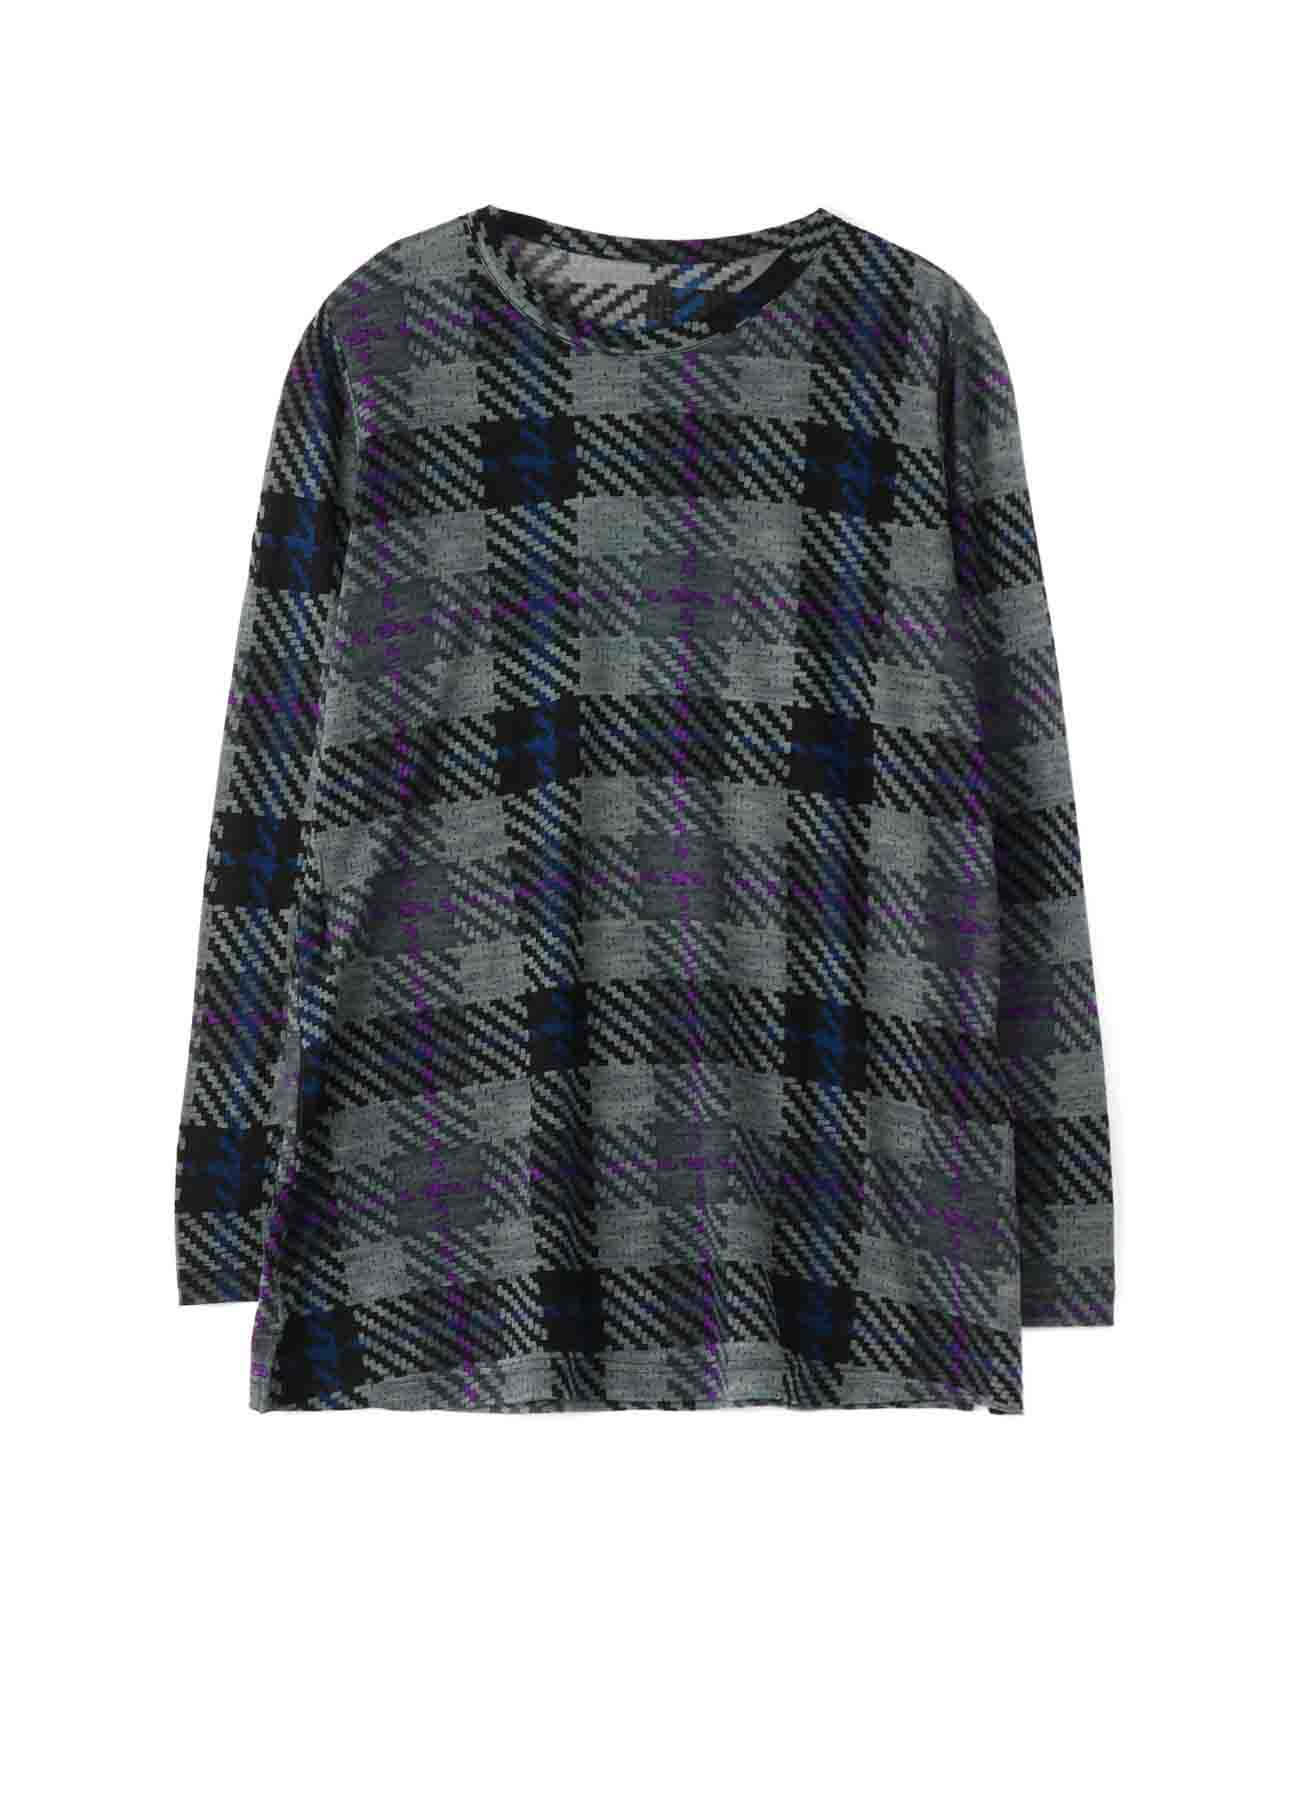 PLAID PRINT A LINE LONG SLEEVE T-SHIRT